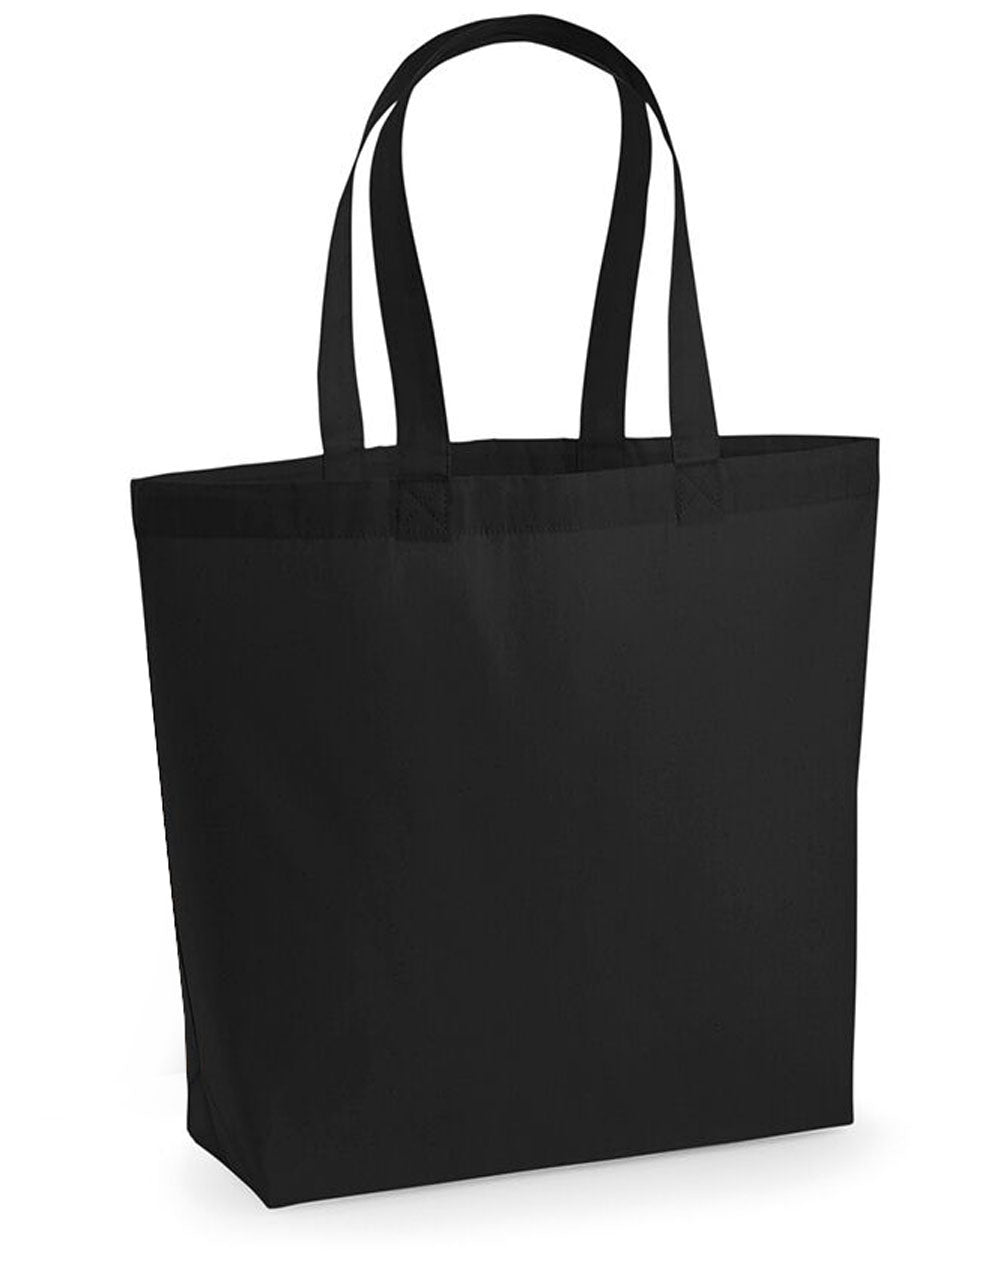 Holographic Fro words woven tote bag in black